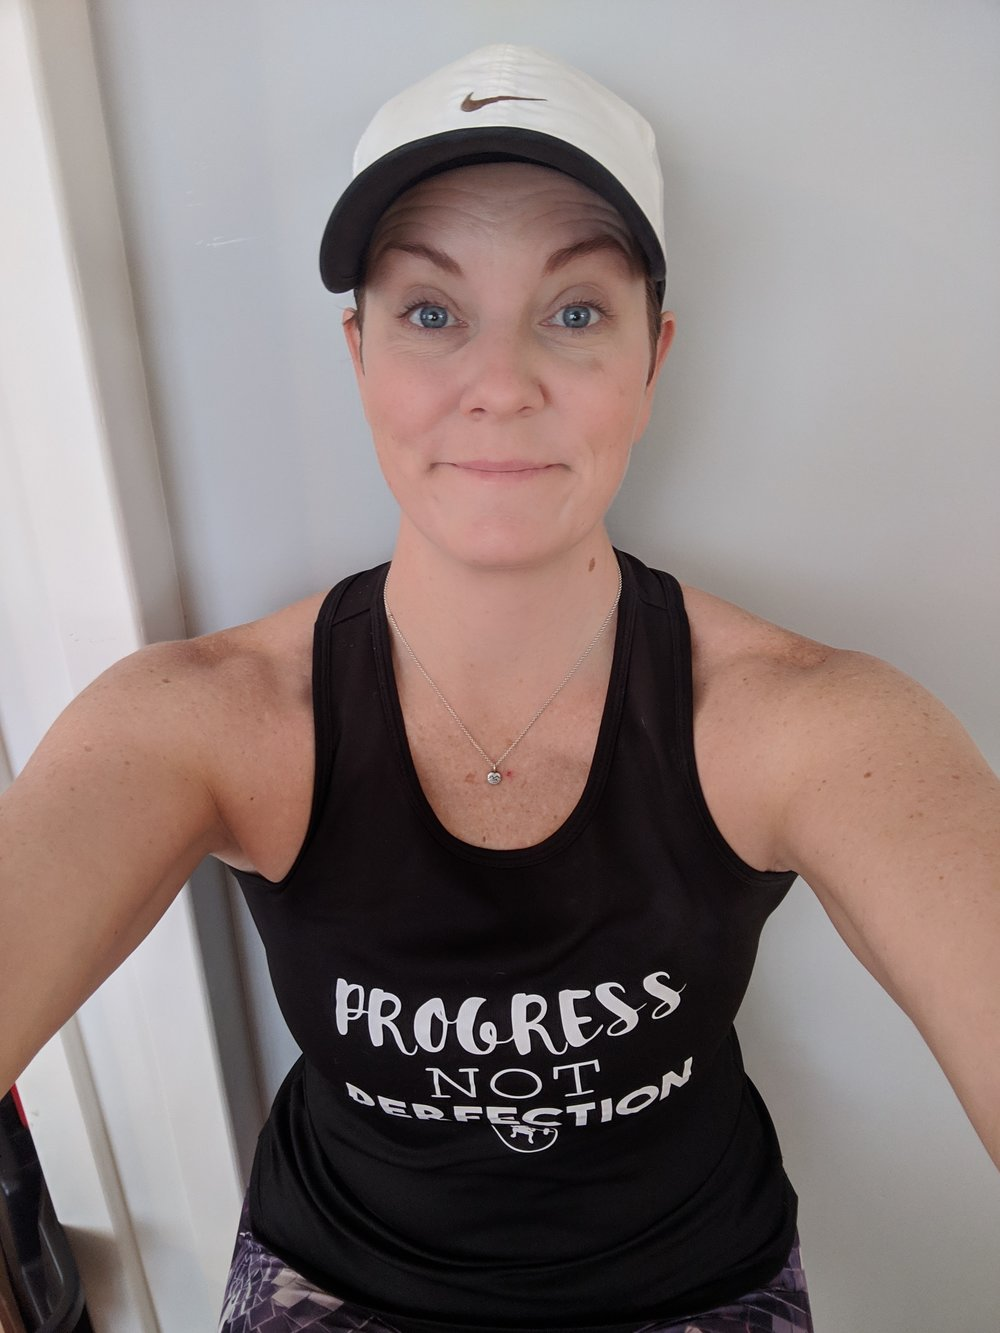 Progress Not Perfection Ignited Health Fitness